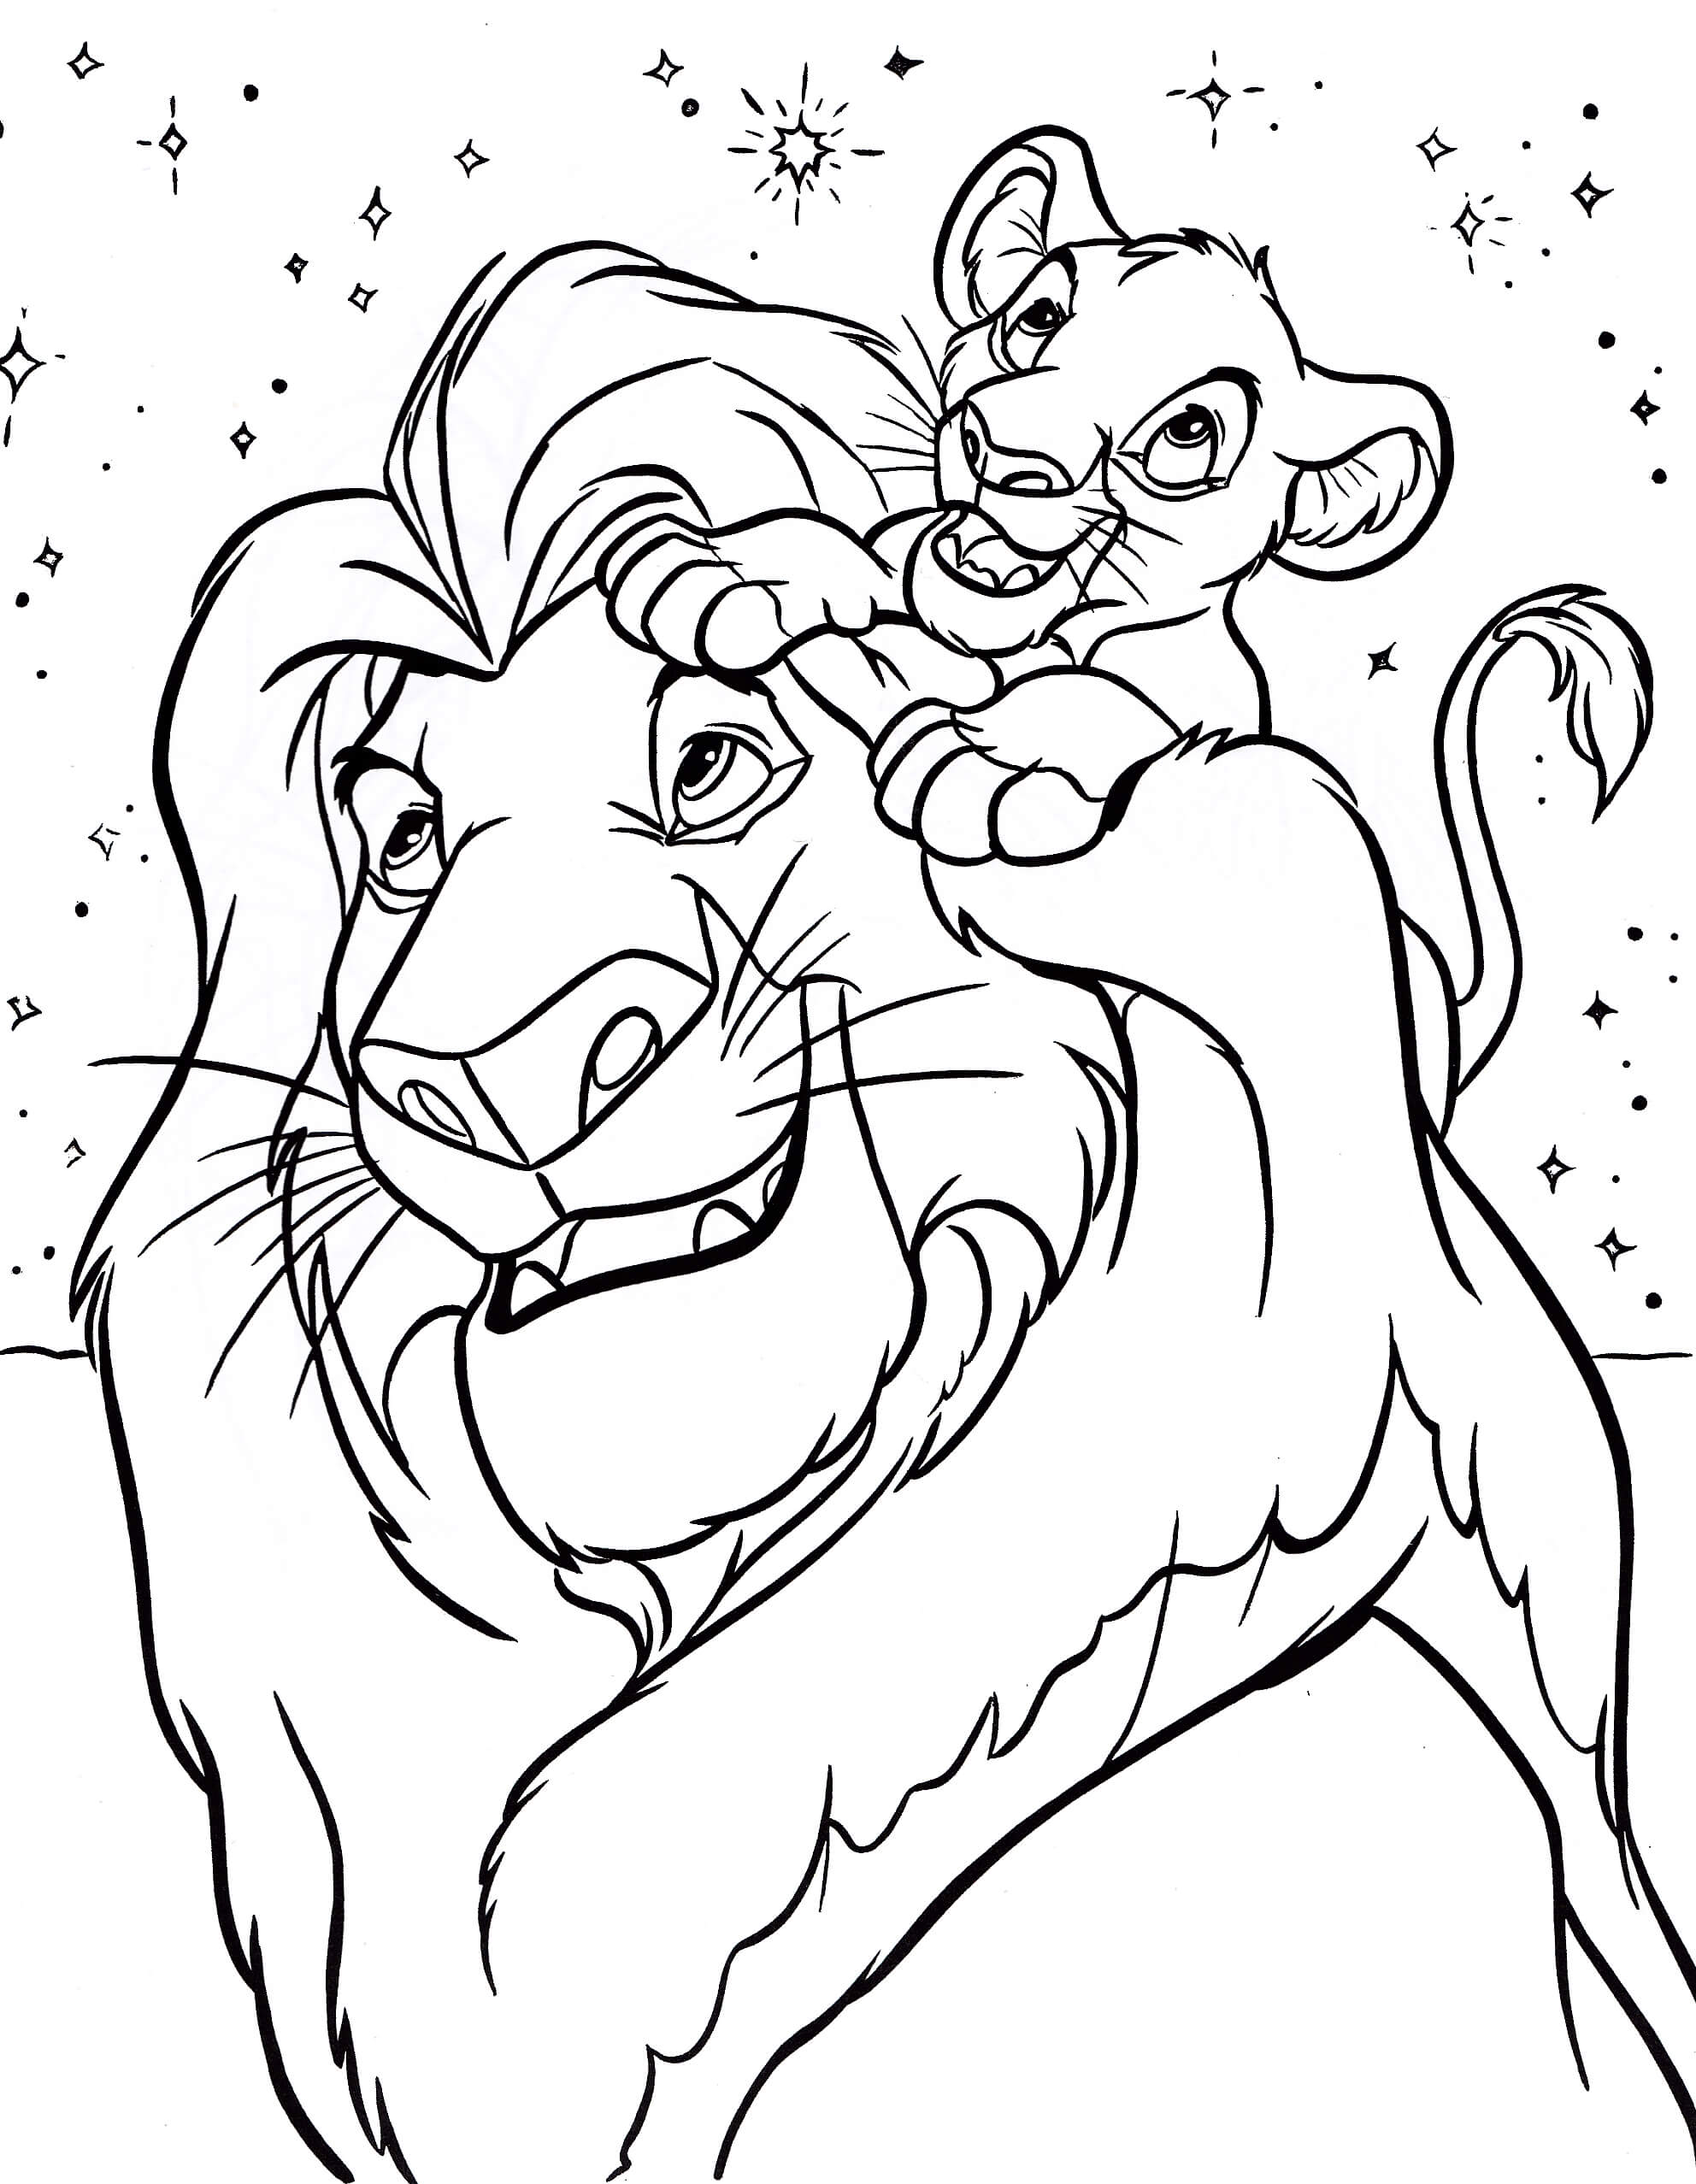 Of disney characters coloring pages for kids and for adults